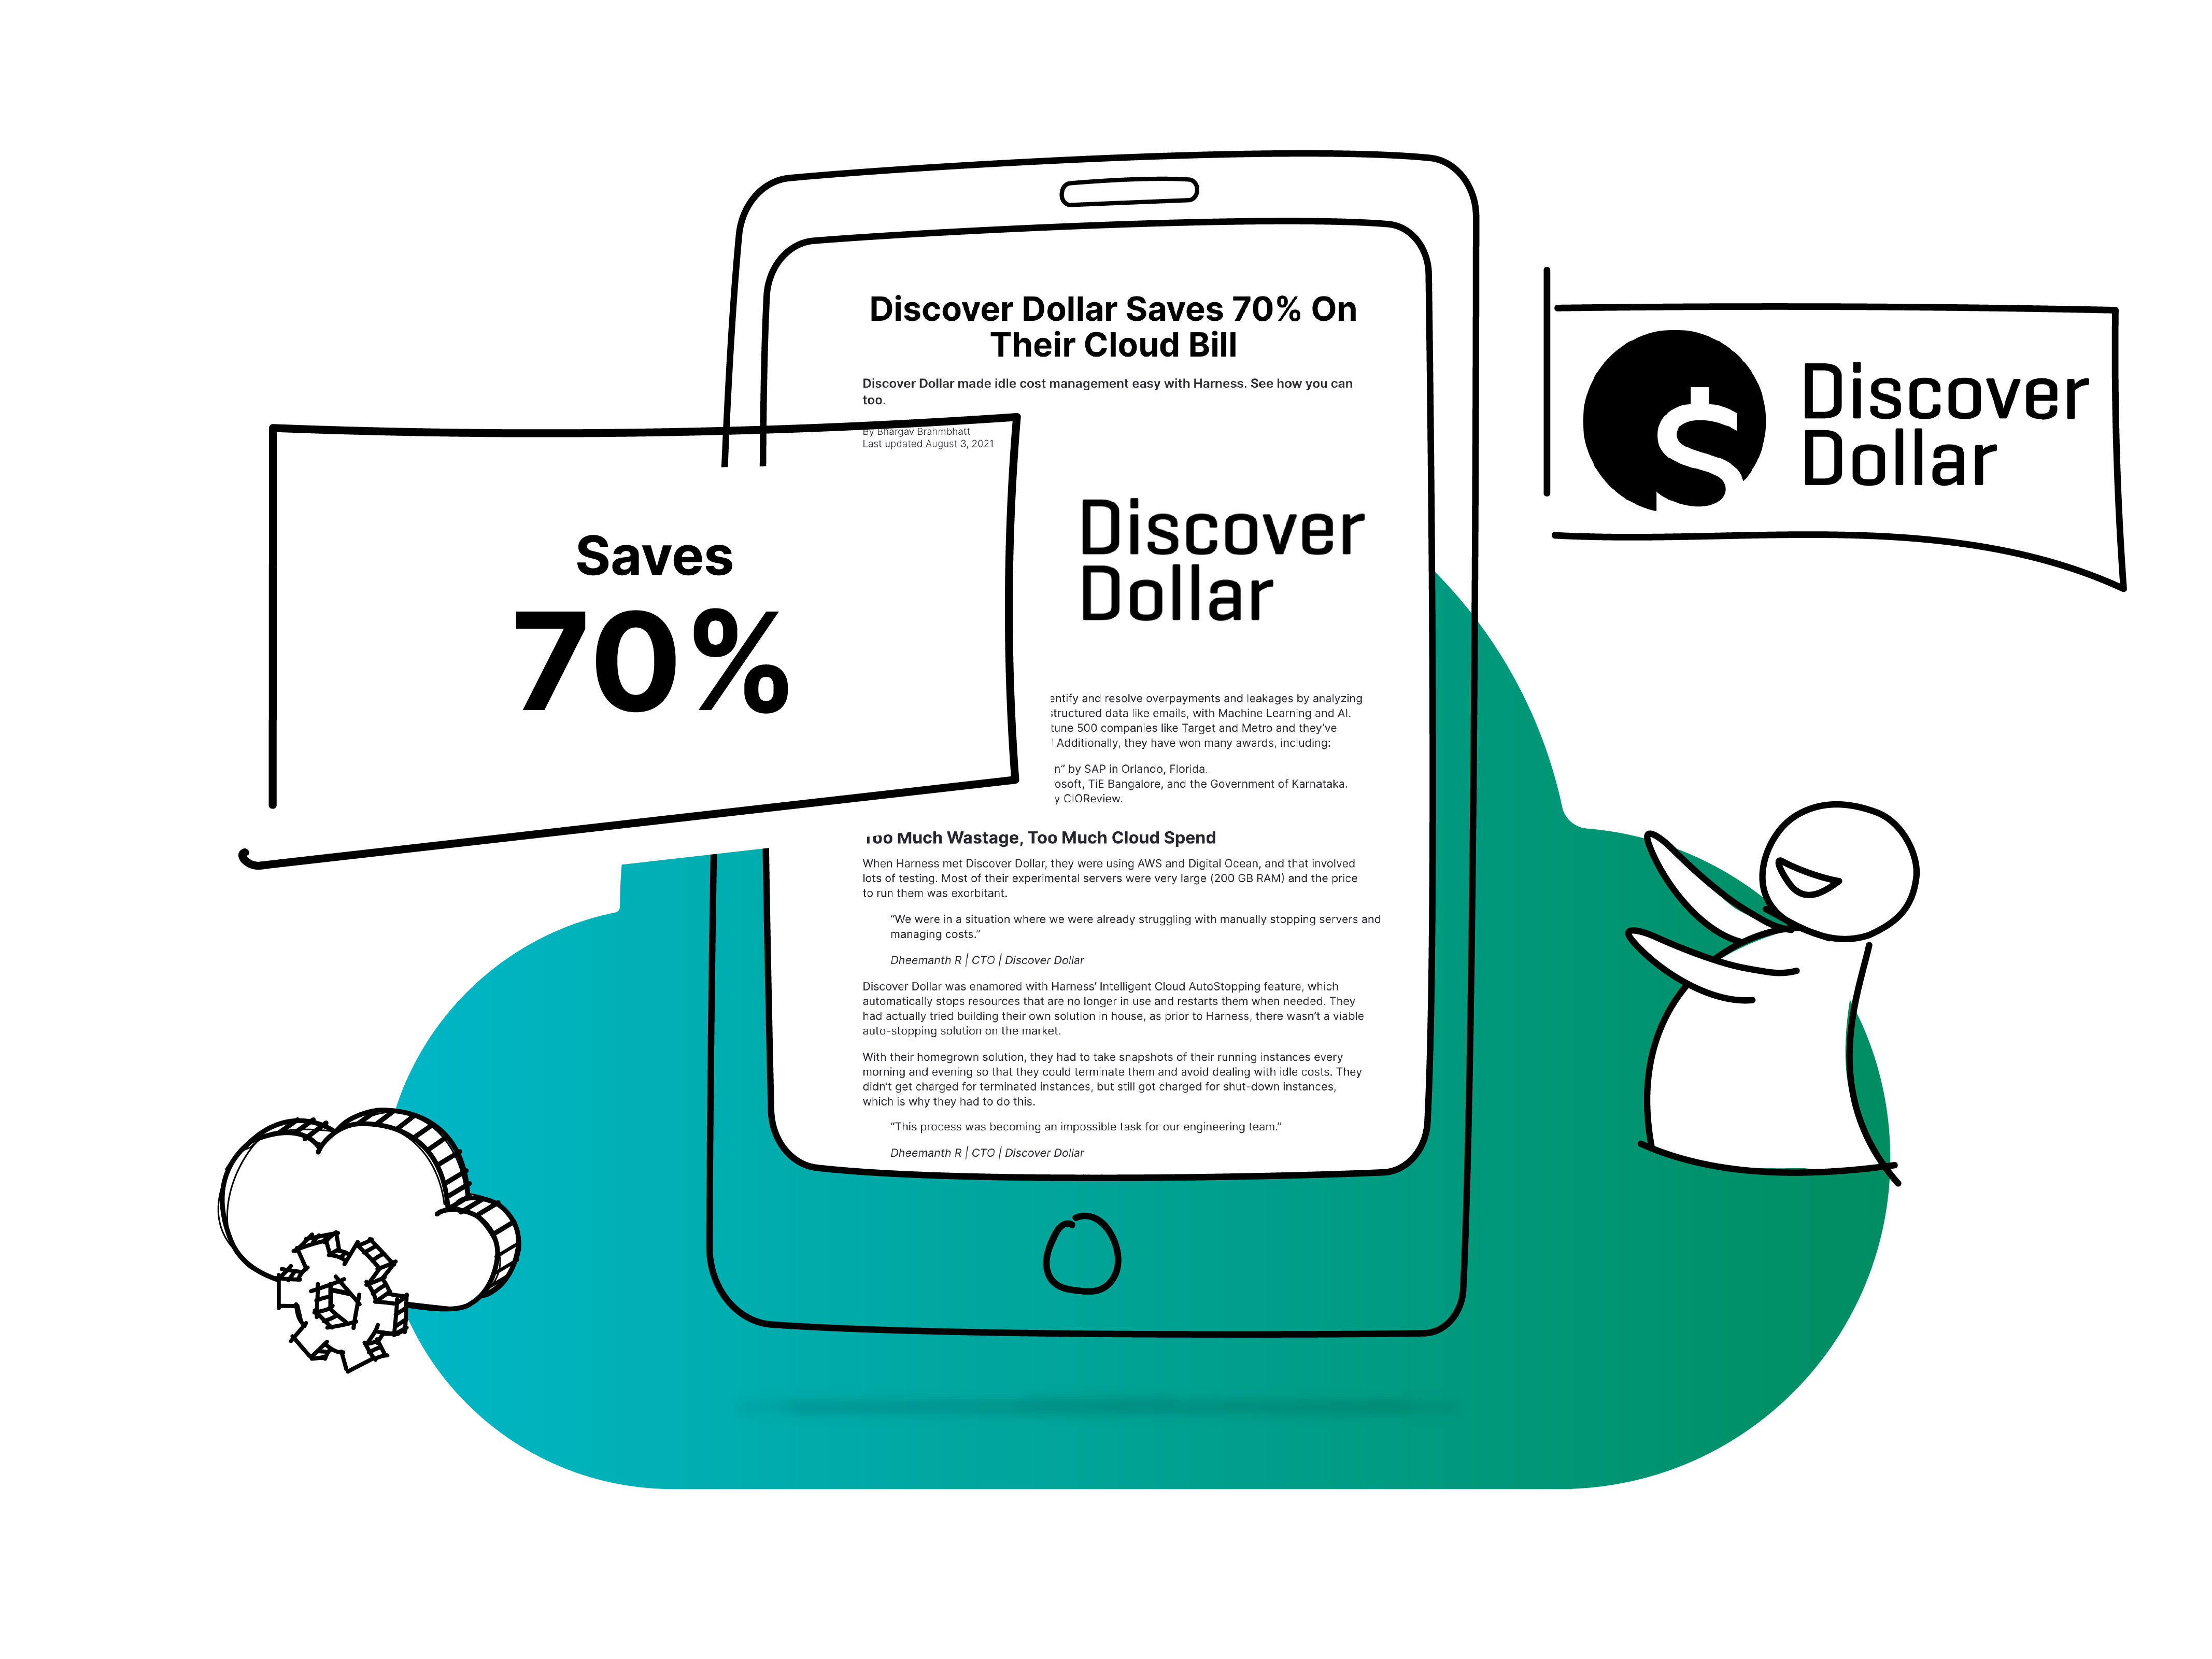 Discover Dollar Saves 70% On Their Cloud Bill